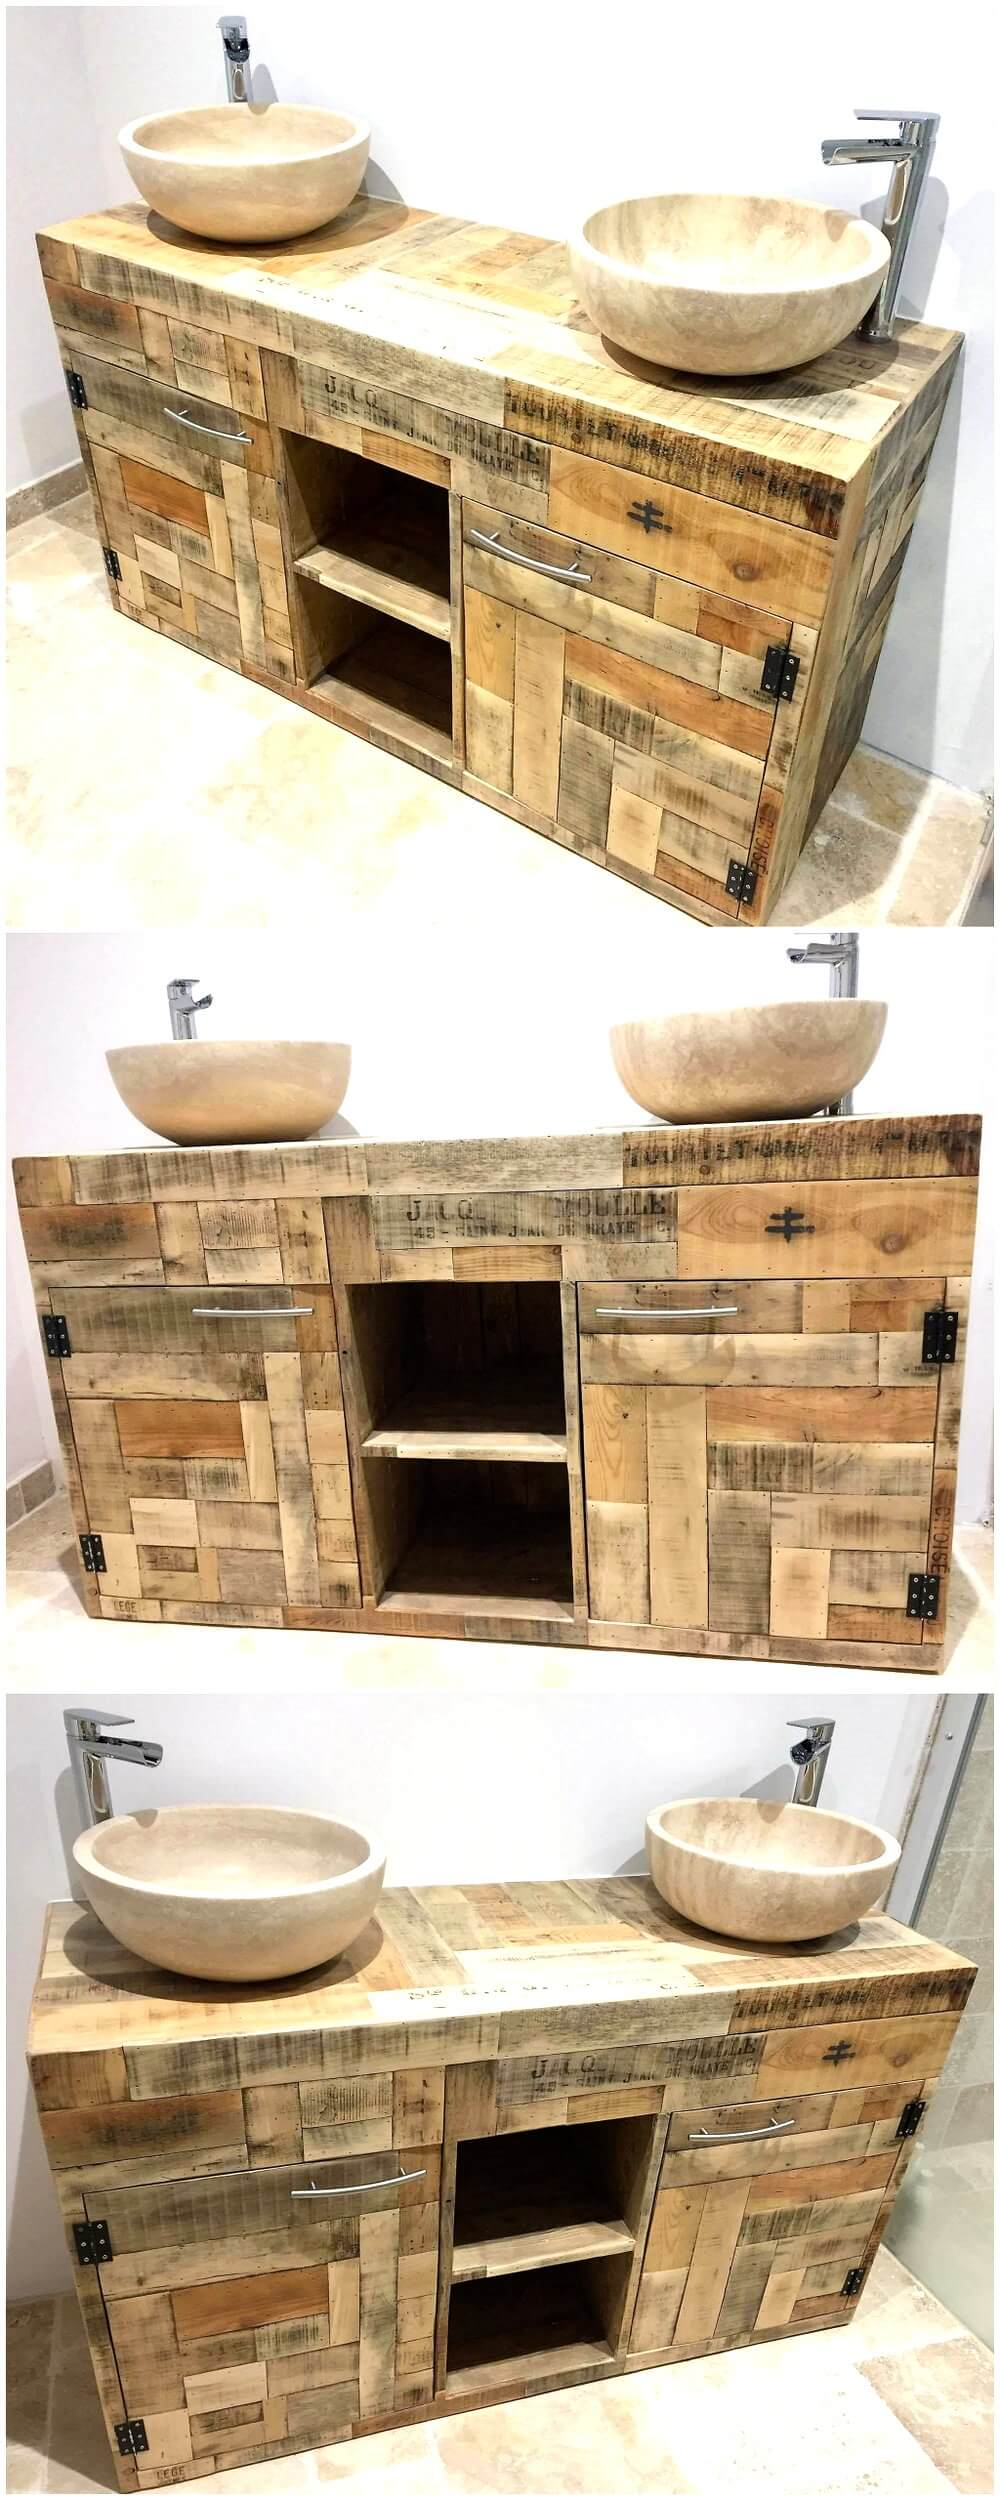 Recycled Wood Pallets Rustic Sink Idea